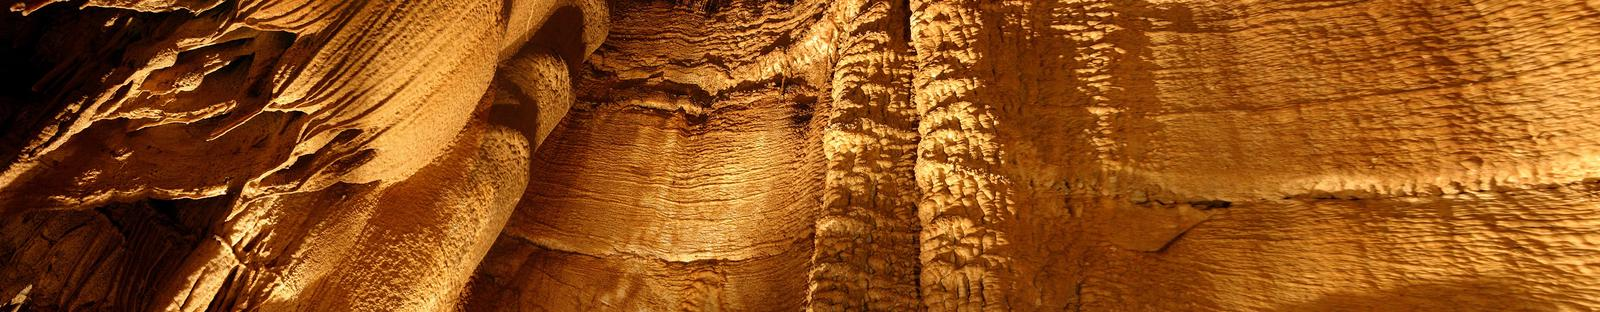 The Domes and Dripstones tour has vast areas of flowstone that resembles draperies. Domes and Dripstones tour